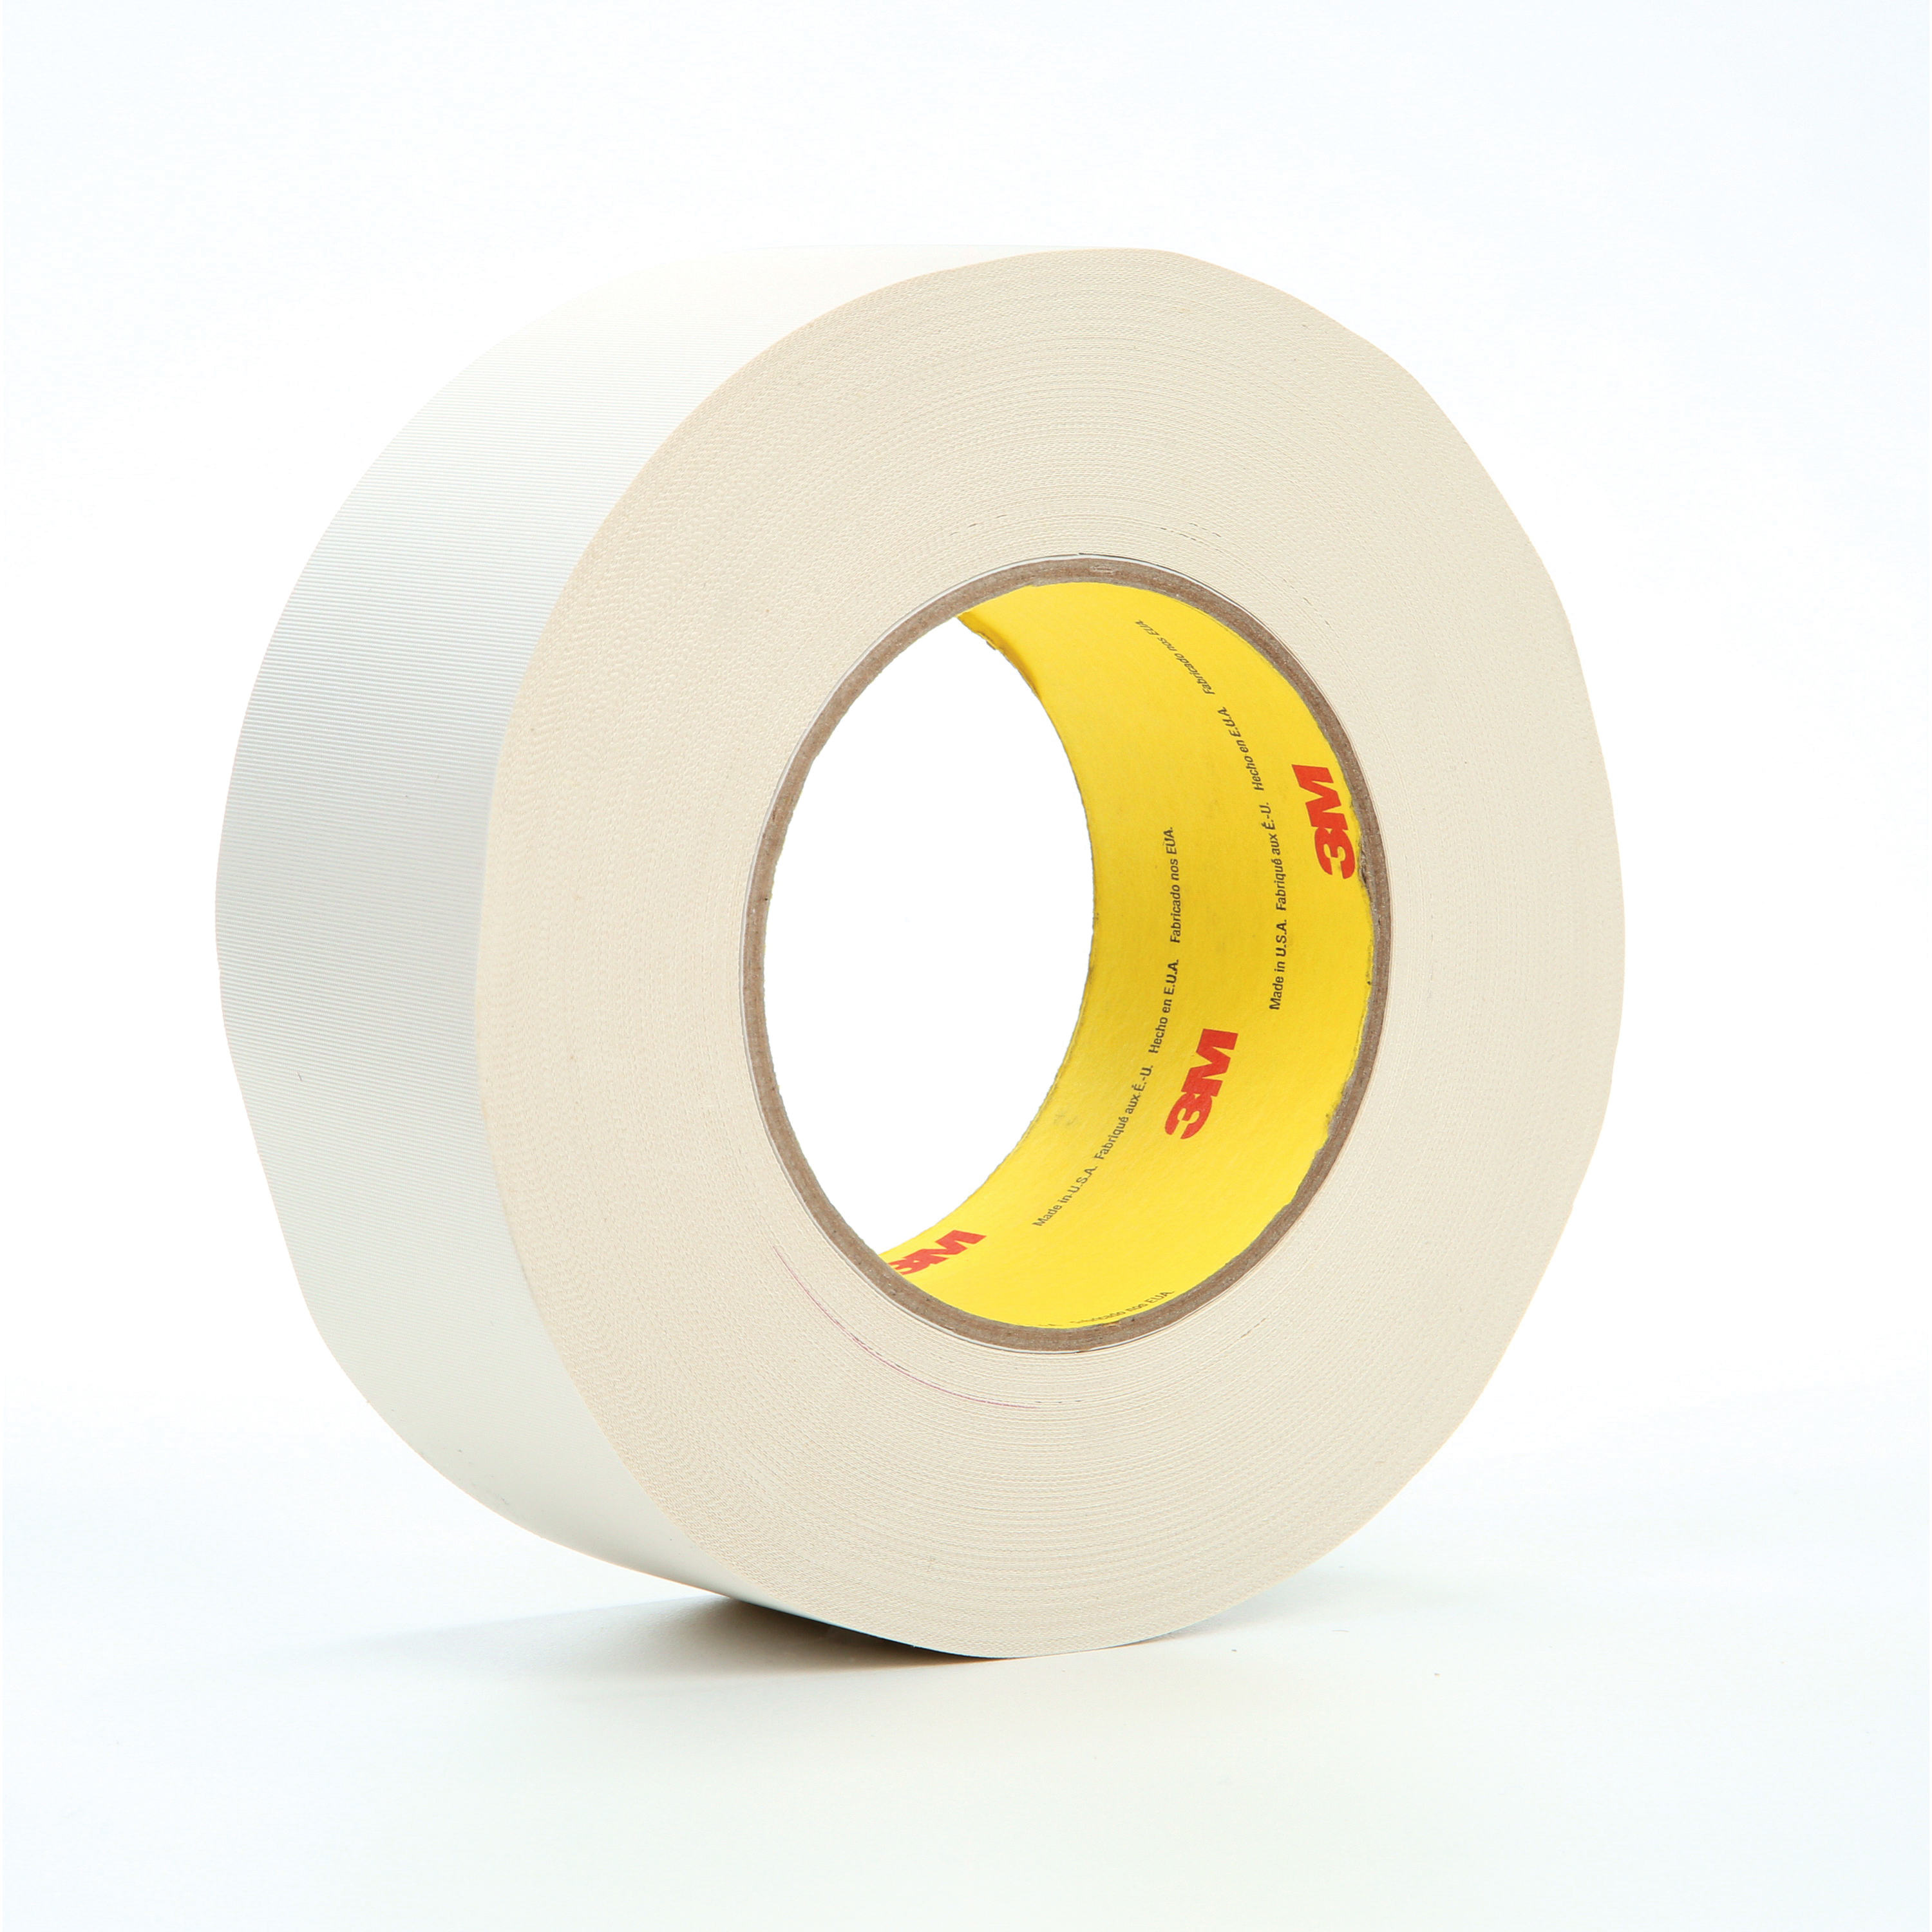 3M™ 021200-04277 Cloth Tape, 60 yd L x 2 in W, 8.3 mil THK, Thermoset Rubber Resin Adhesive, Glass Cloth Backing, White